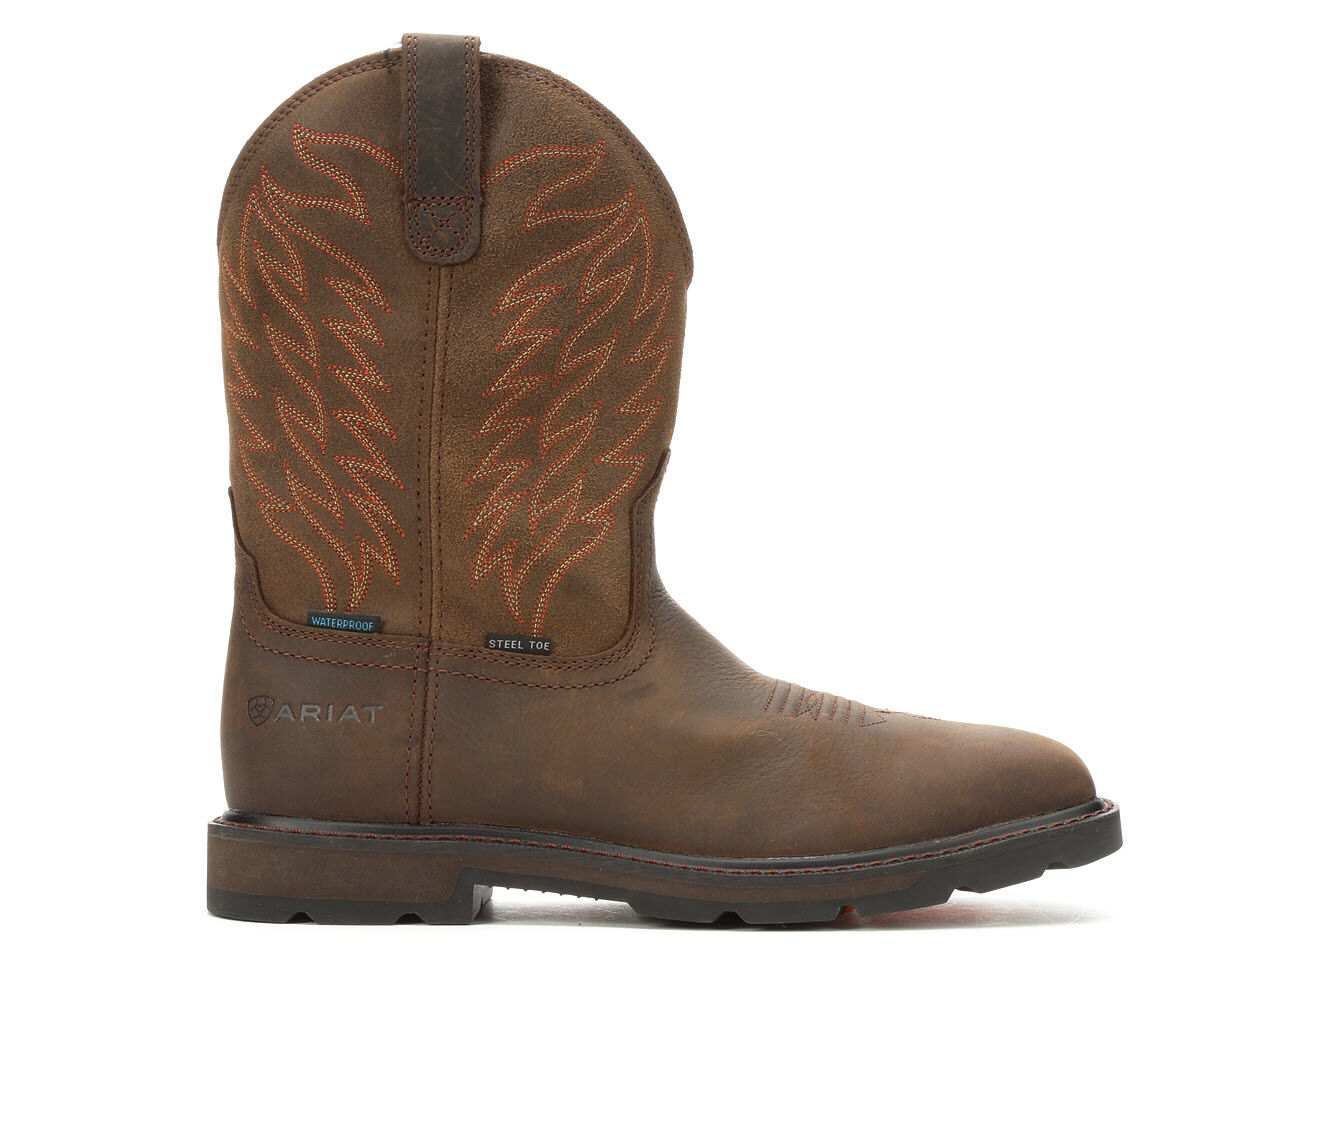 a huge selection of Men's Ariat Groundbreaker Waterproof Steel Toe Cowboy Boots Dark Brown